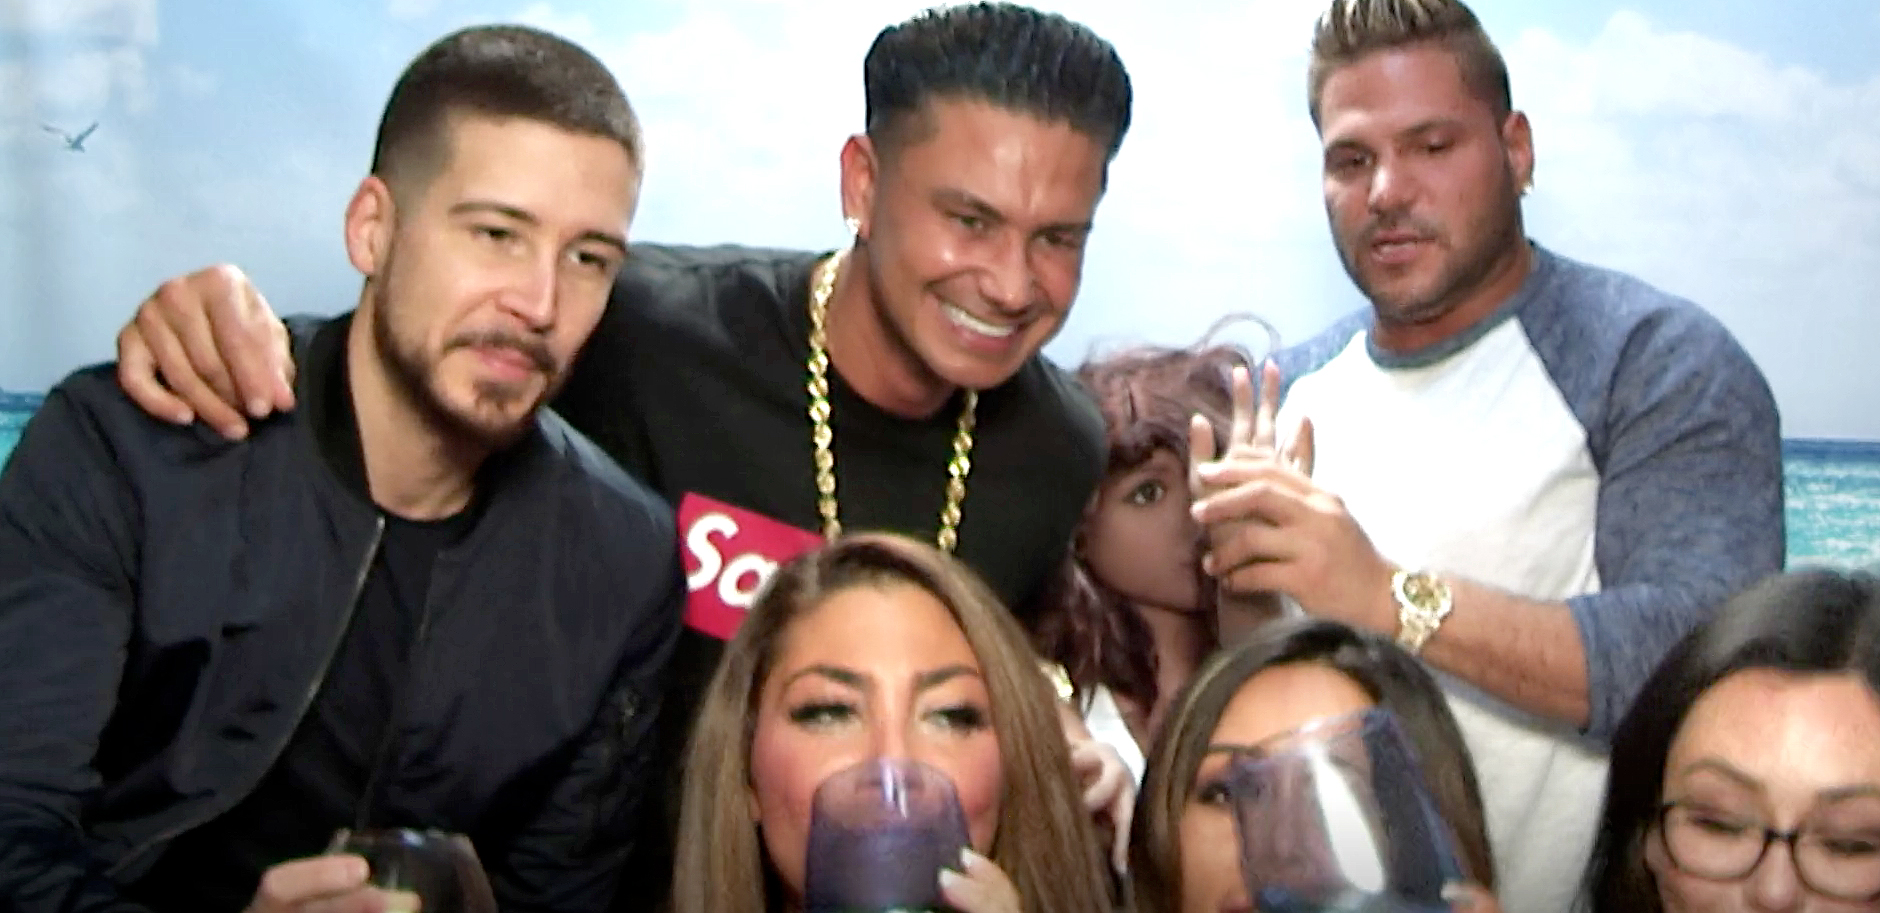 The Jersey Shore Cast carrries a Sammi Giancola doll.